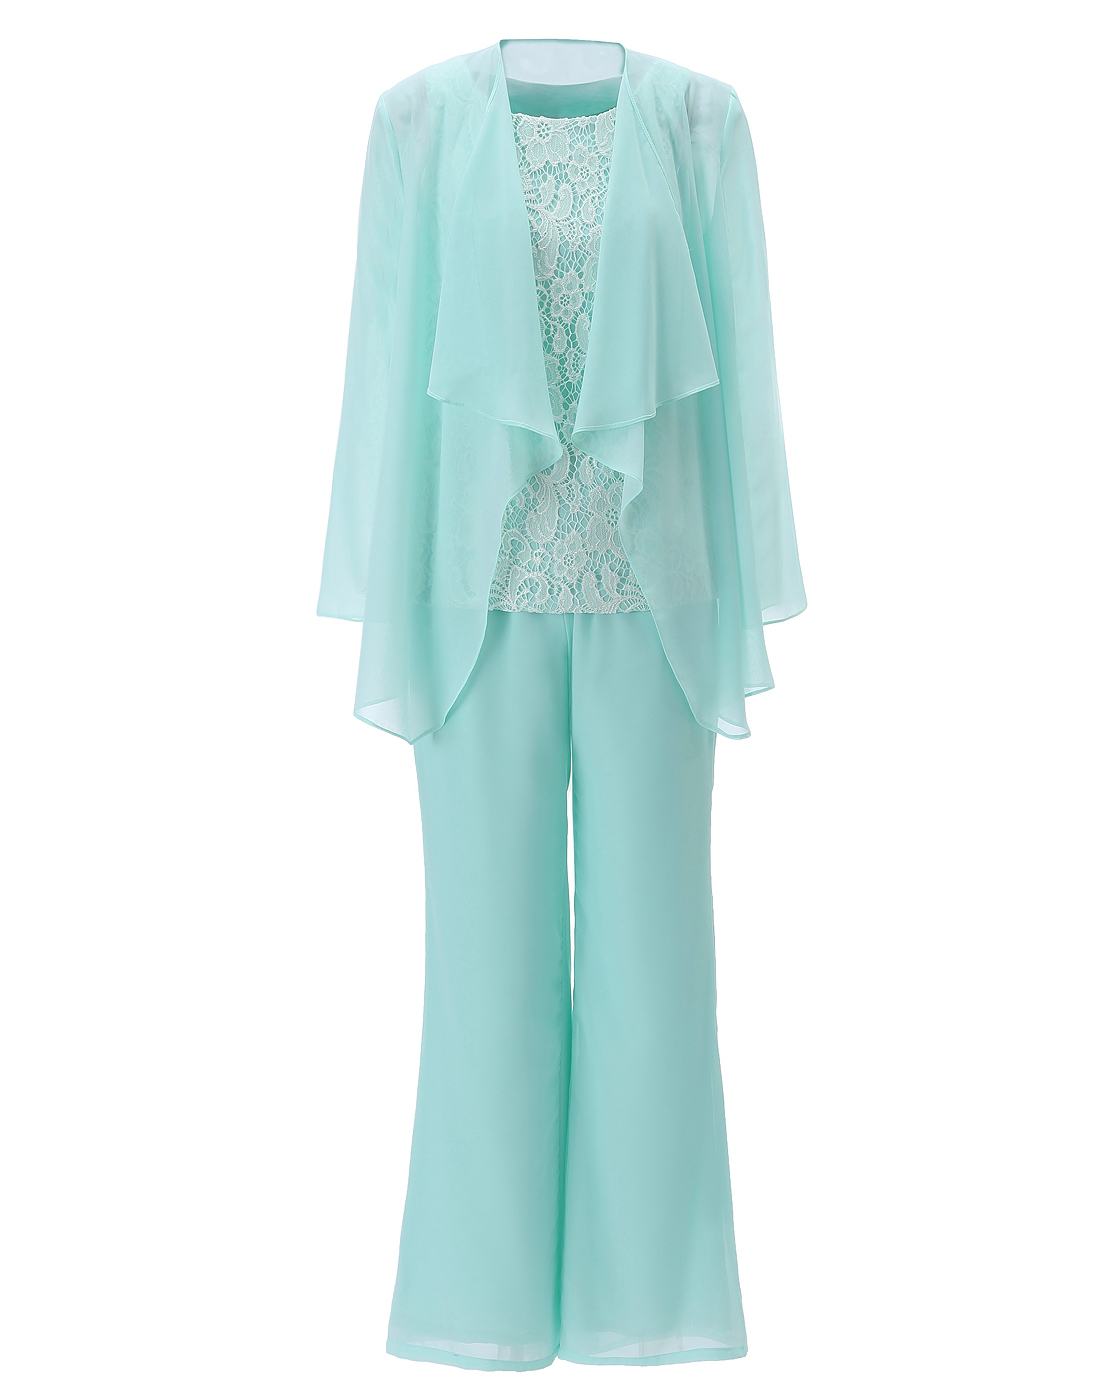 Formal Navy 3 Pieces Women Chiffon Lace Fashion Mother Of The Bride Dress Pant Suits With Long Sleeves Outfit Jacket SL-M05